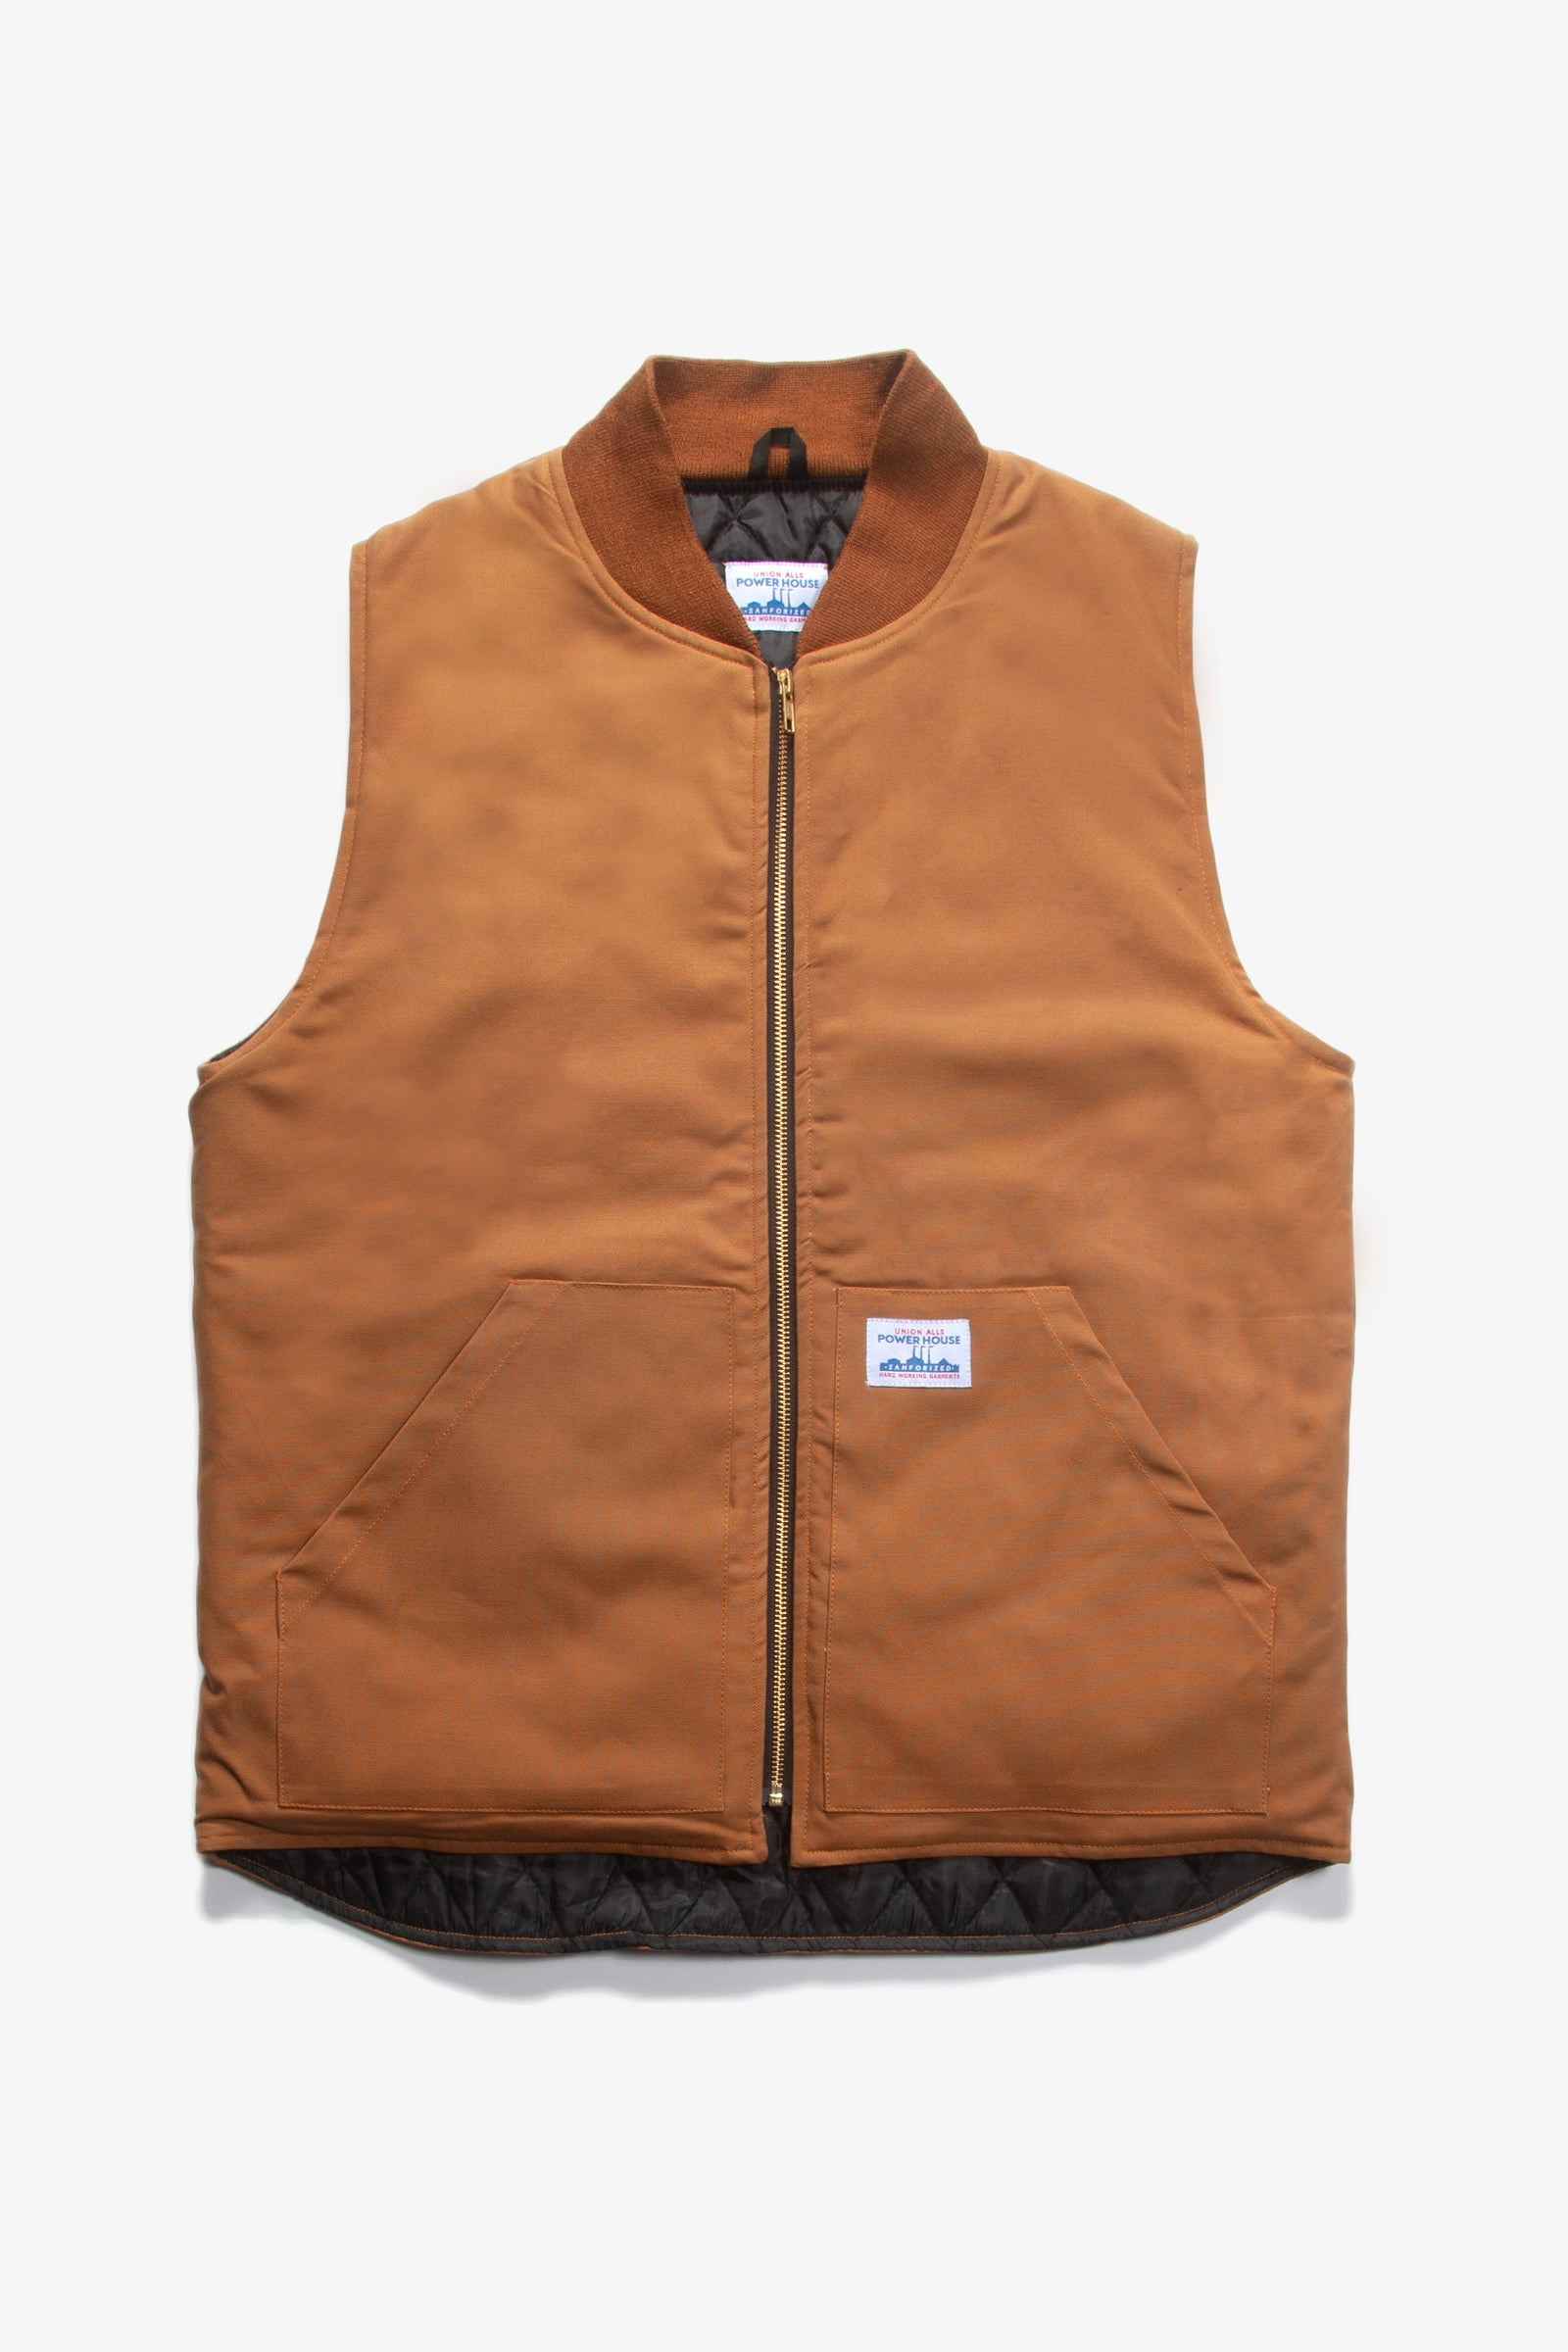 Power House - Canvas Work Vest - Brown